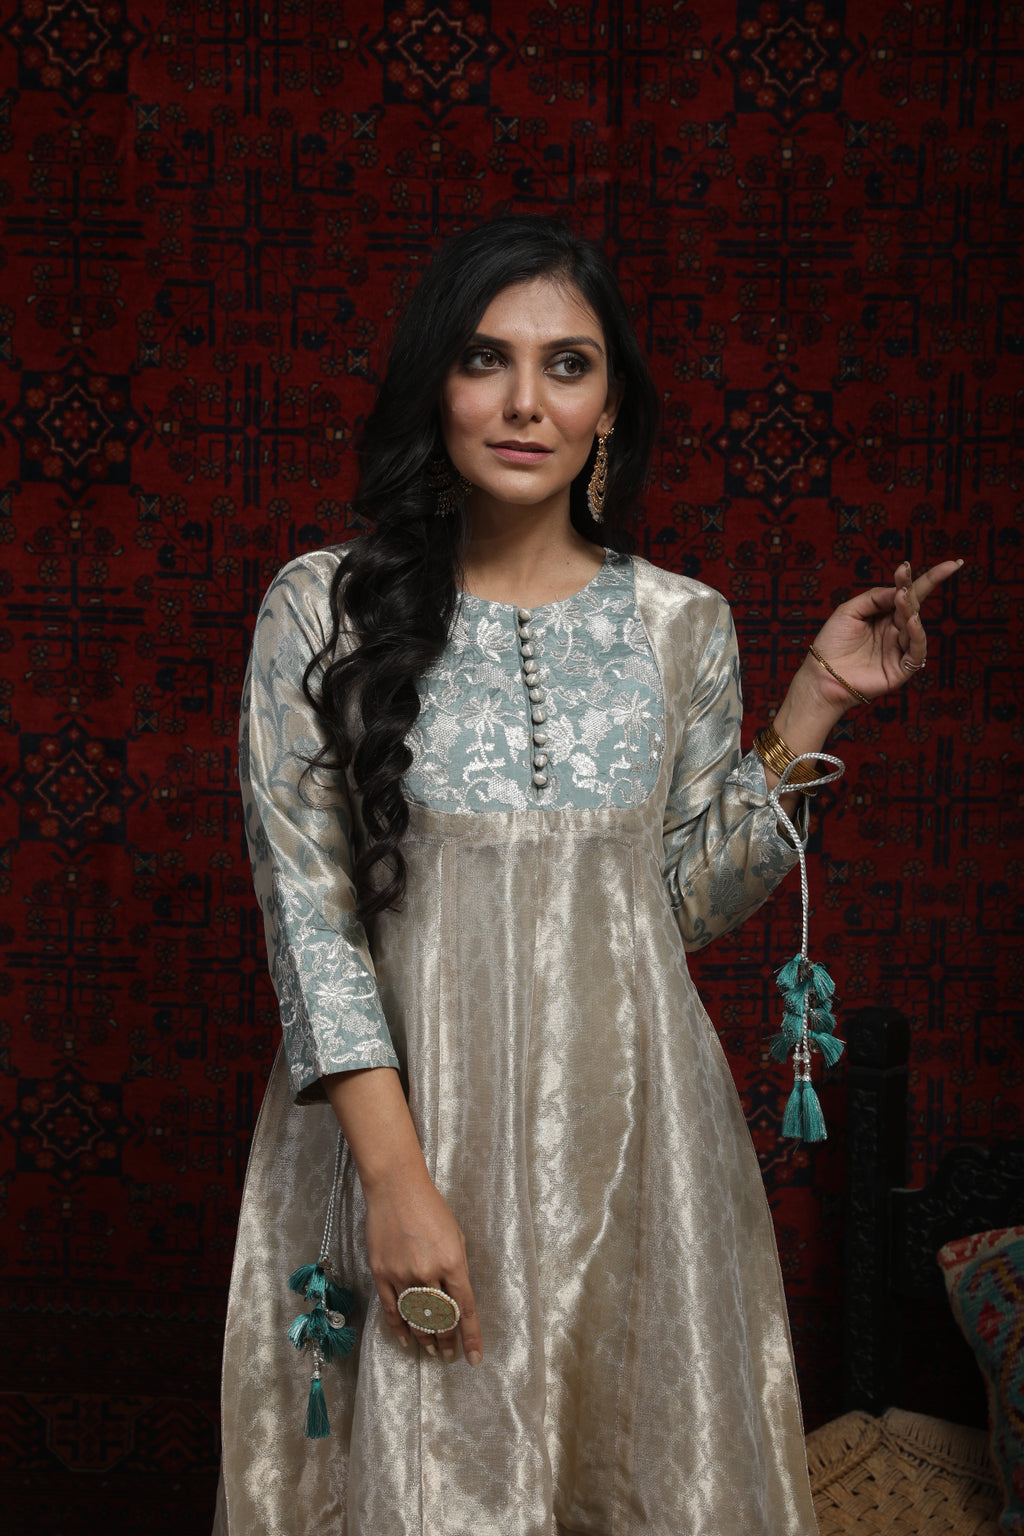 LDD-01309 | Metallic Beige & Grey | Formal 3 Piece Suit  | Banarsi Jacquard (Metallic)